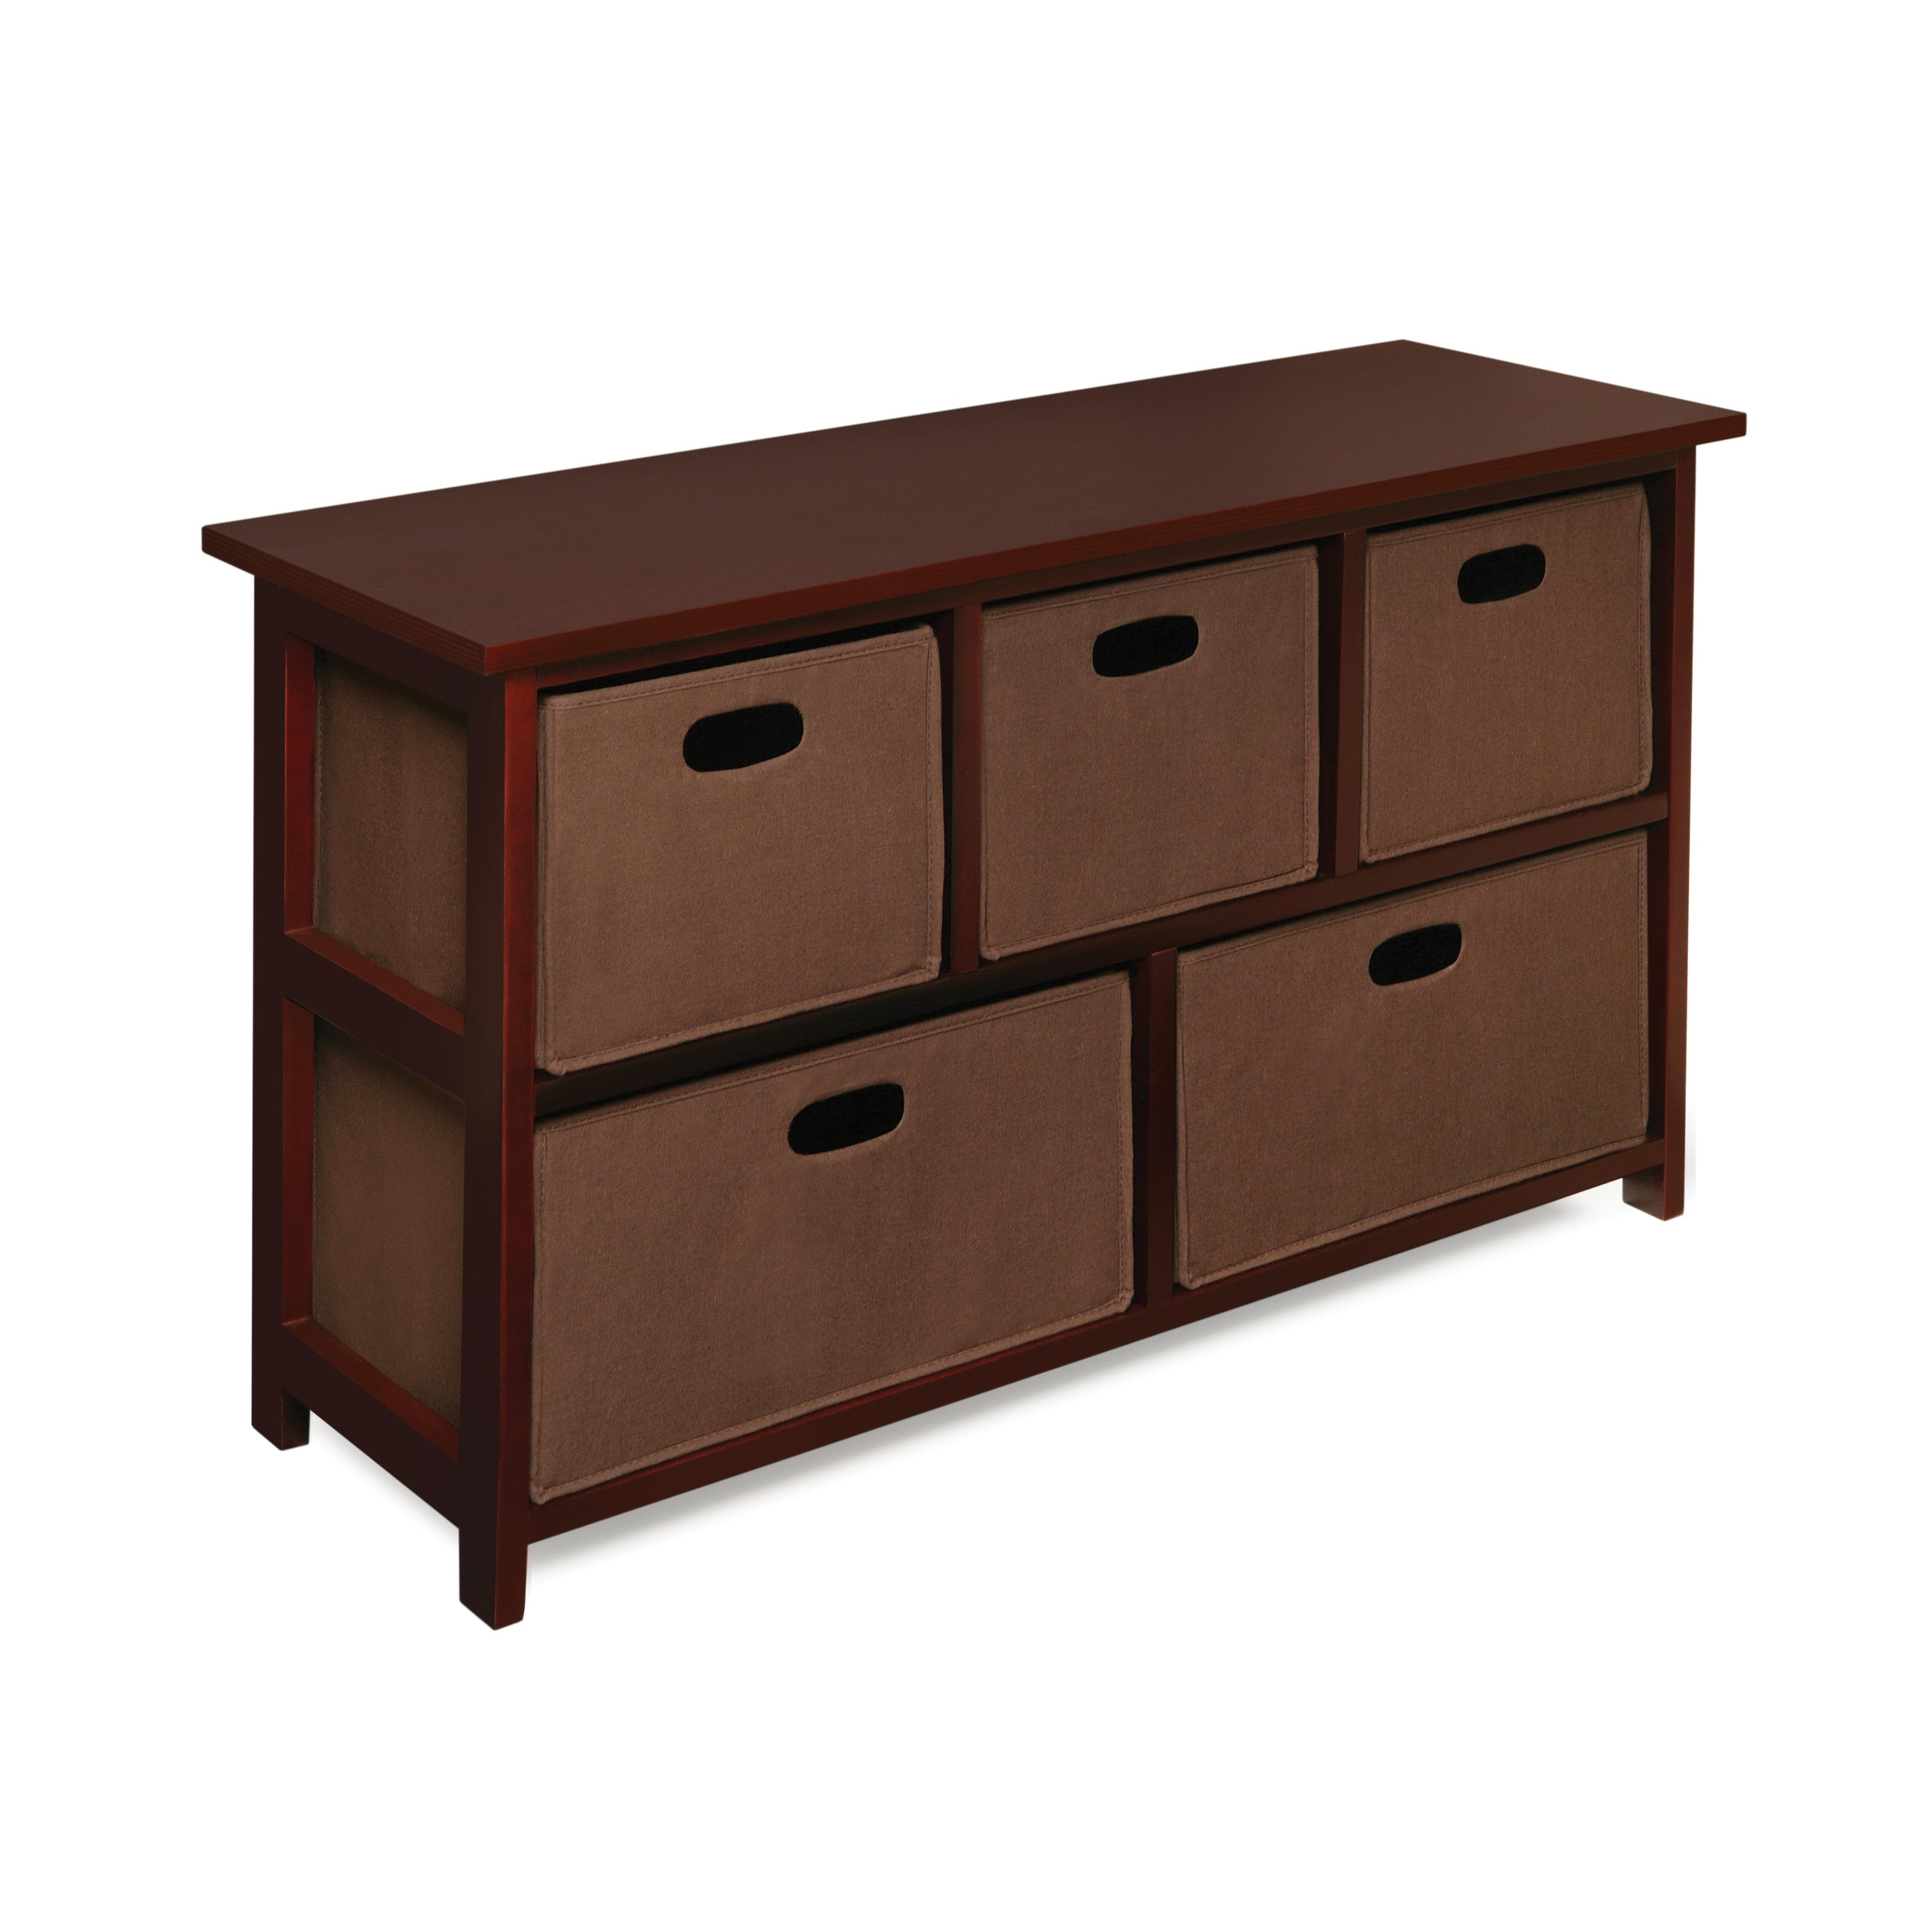 Children S Wooden Cherry Storage Cabinet With Baskets Free Shipping Today 5288051